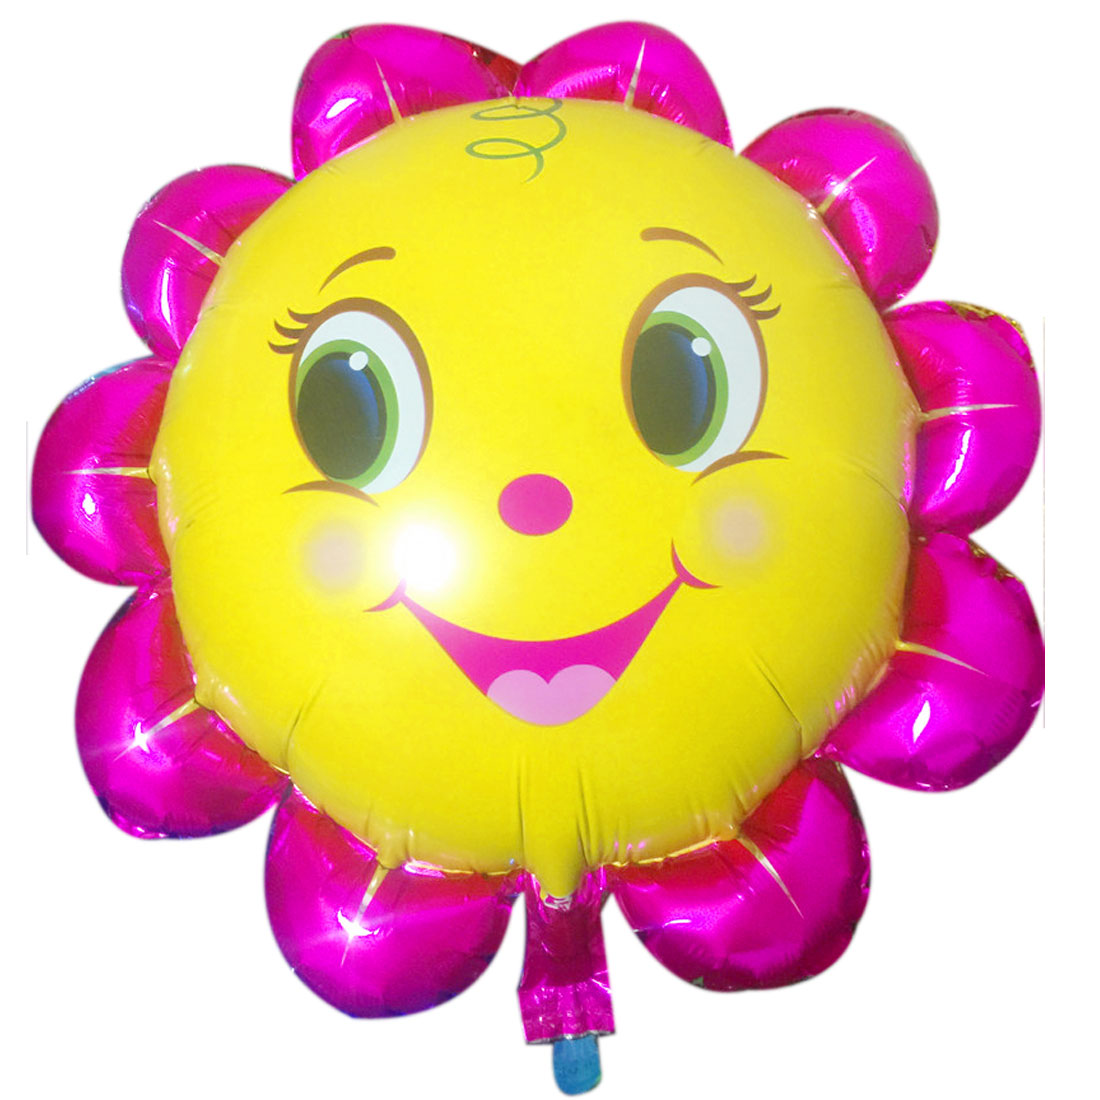 Festival Party Decor Foil Flower Shape Inflation Helium Balloon Yellow 15.7 Inch